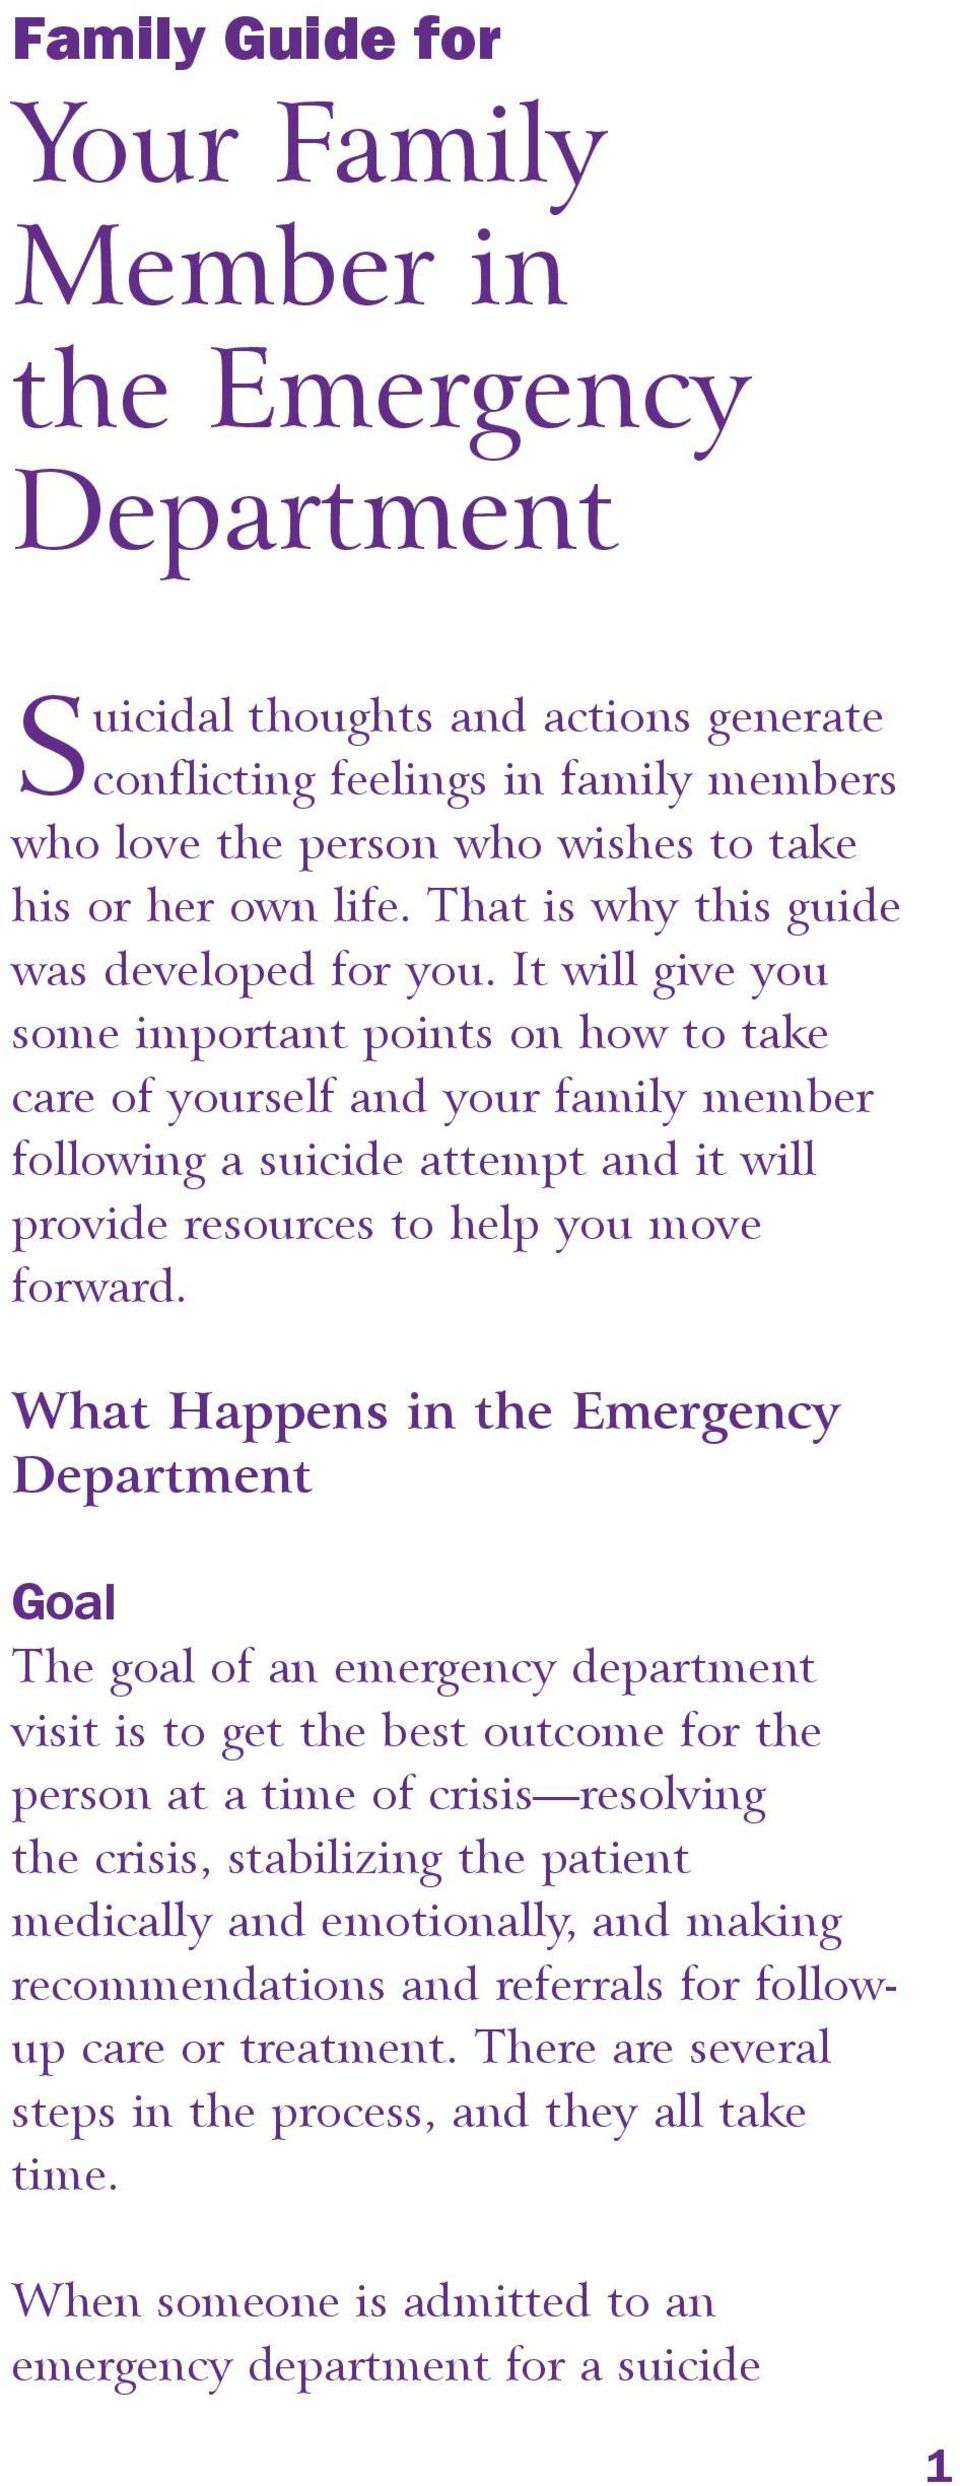 It will give you some important points on how to take care of yourself and your family member following a suicide attempt and it will provide resources to help you move forward.